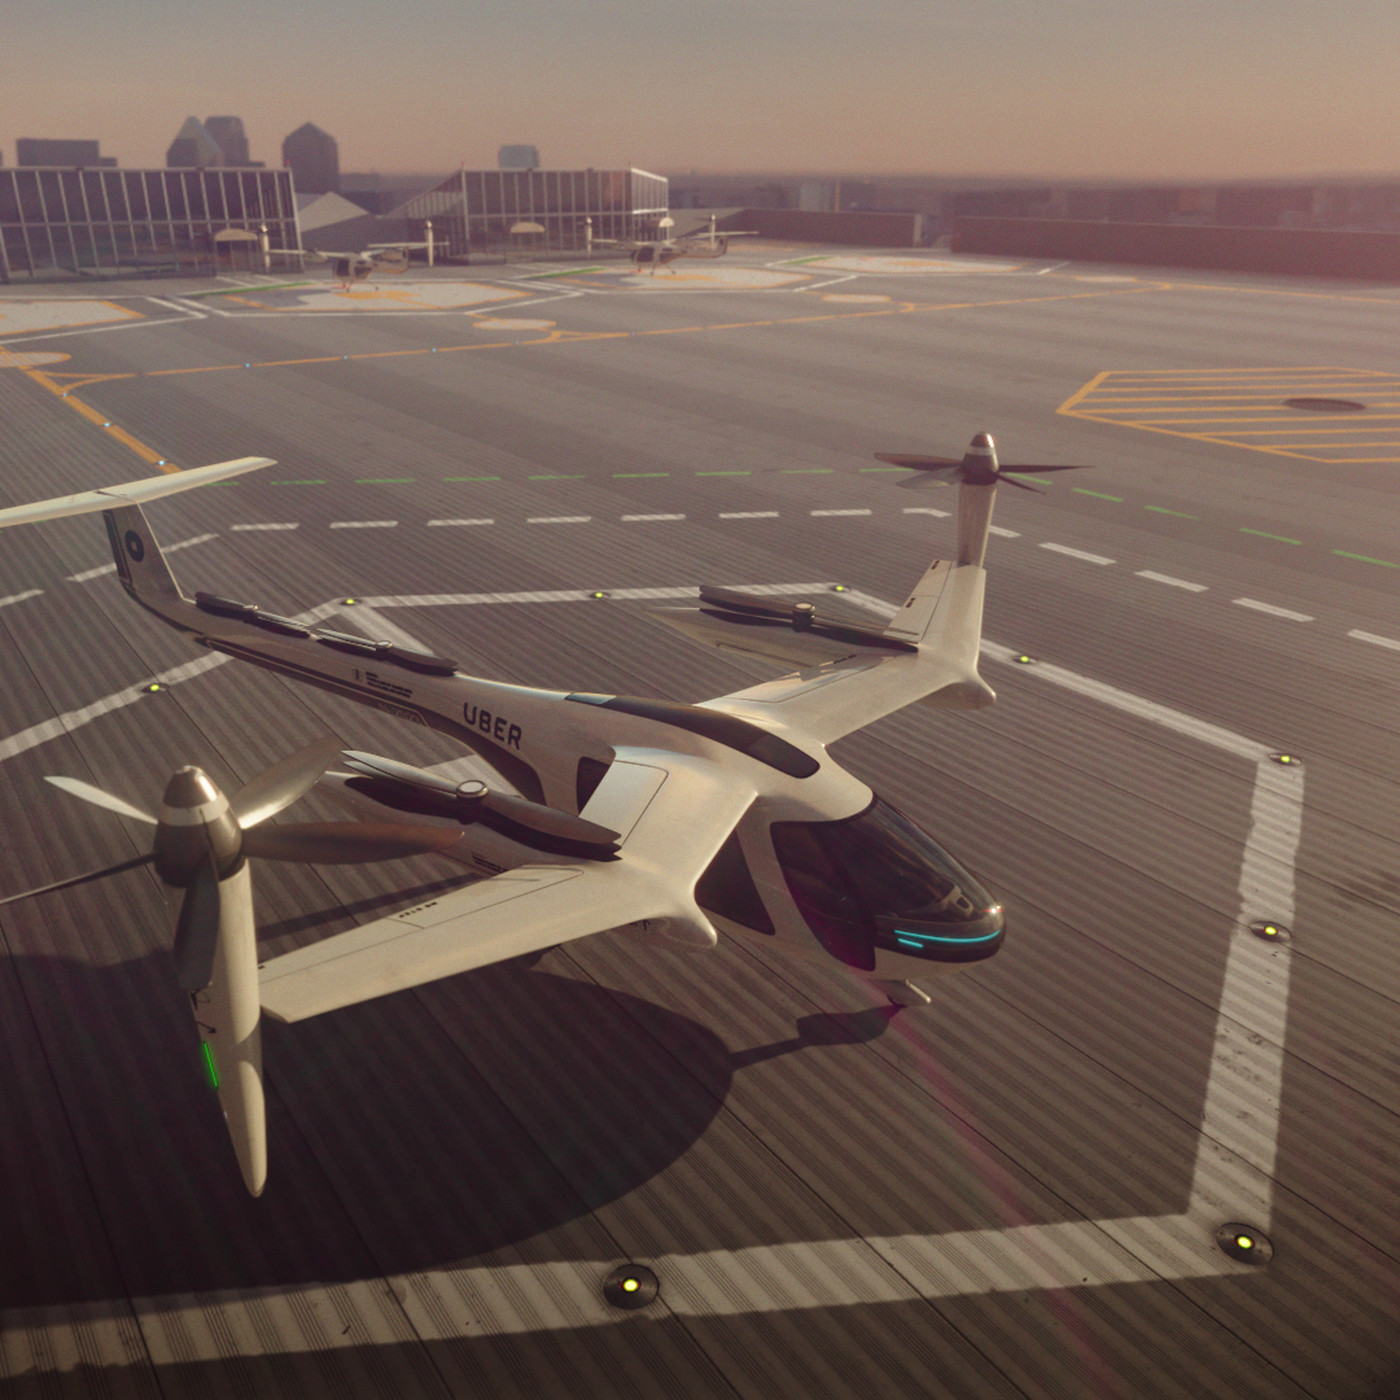 Uber's 'flying cars' could arrive in LA by 2020 — and here's